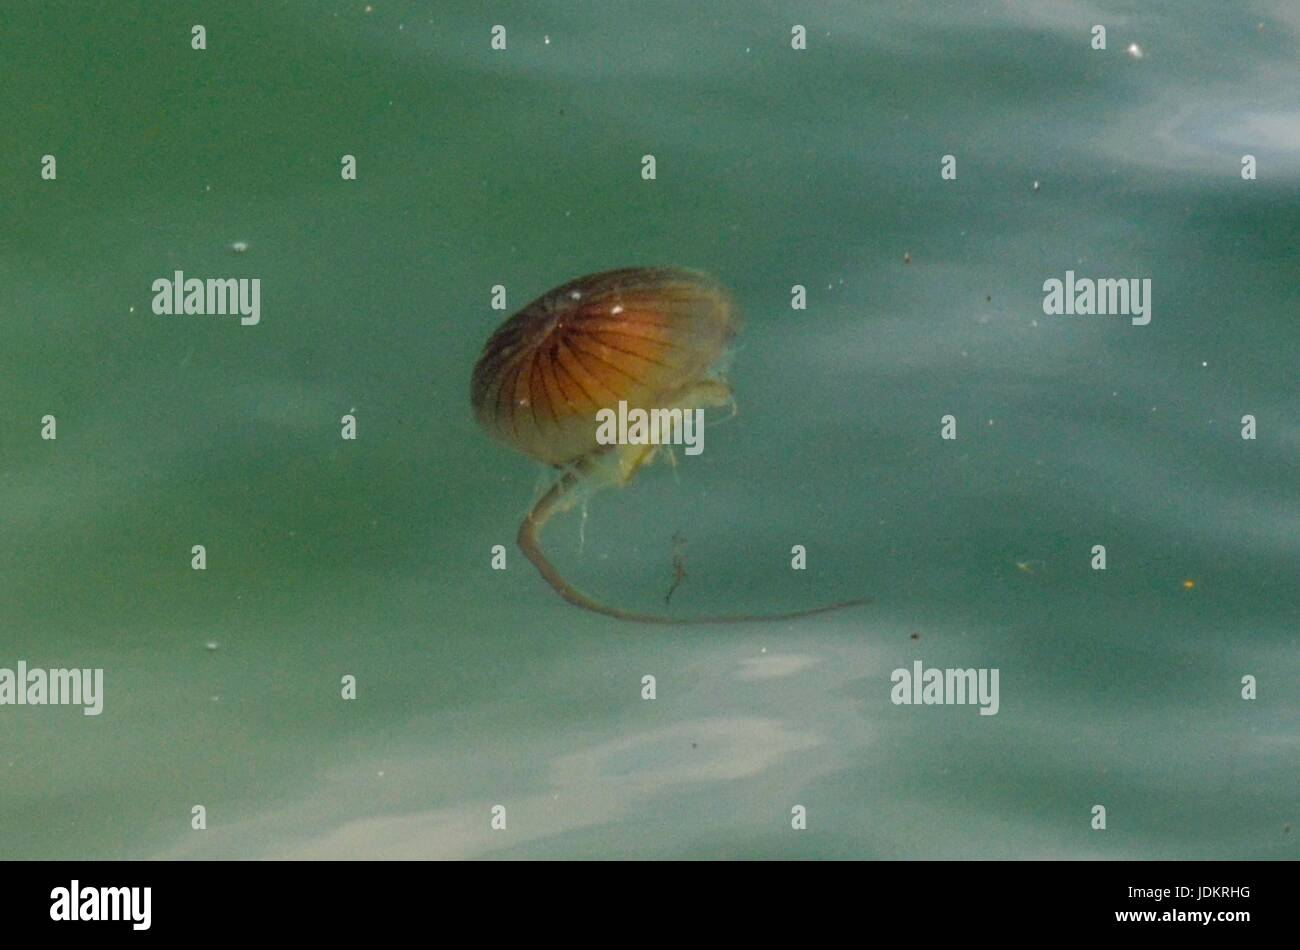 West Bay, Dorset, UK. 20th June 2017.   UK Weather.  A Compass Jellyfish in the sea just off the beach at the seaside - Stock Image